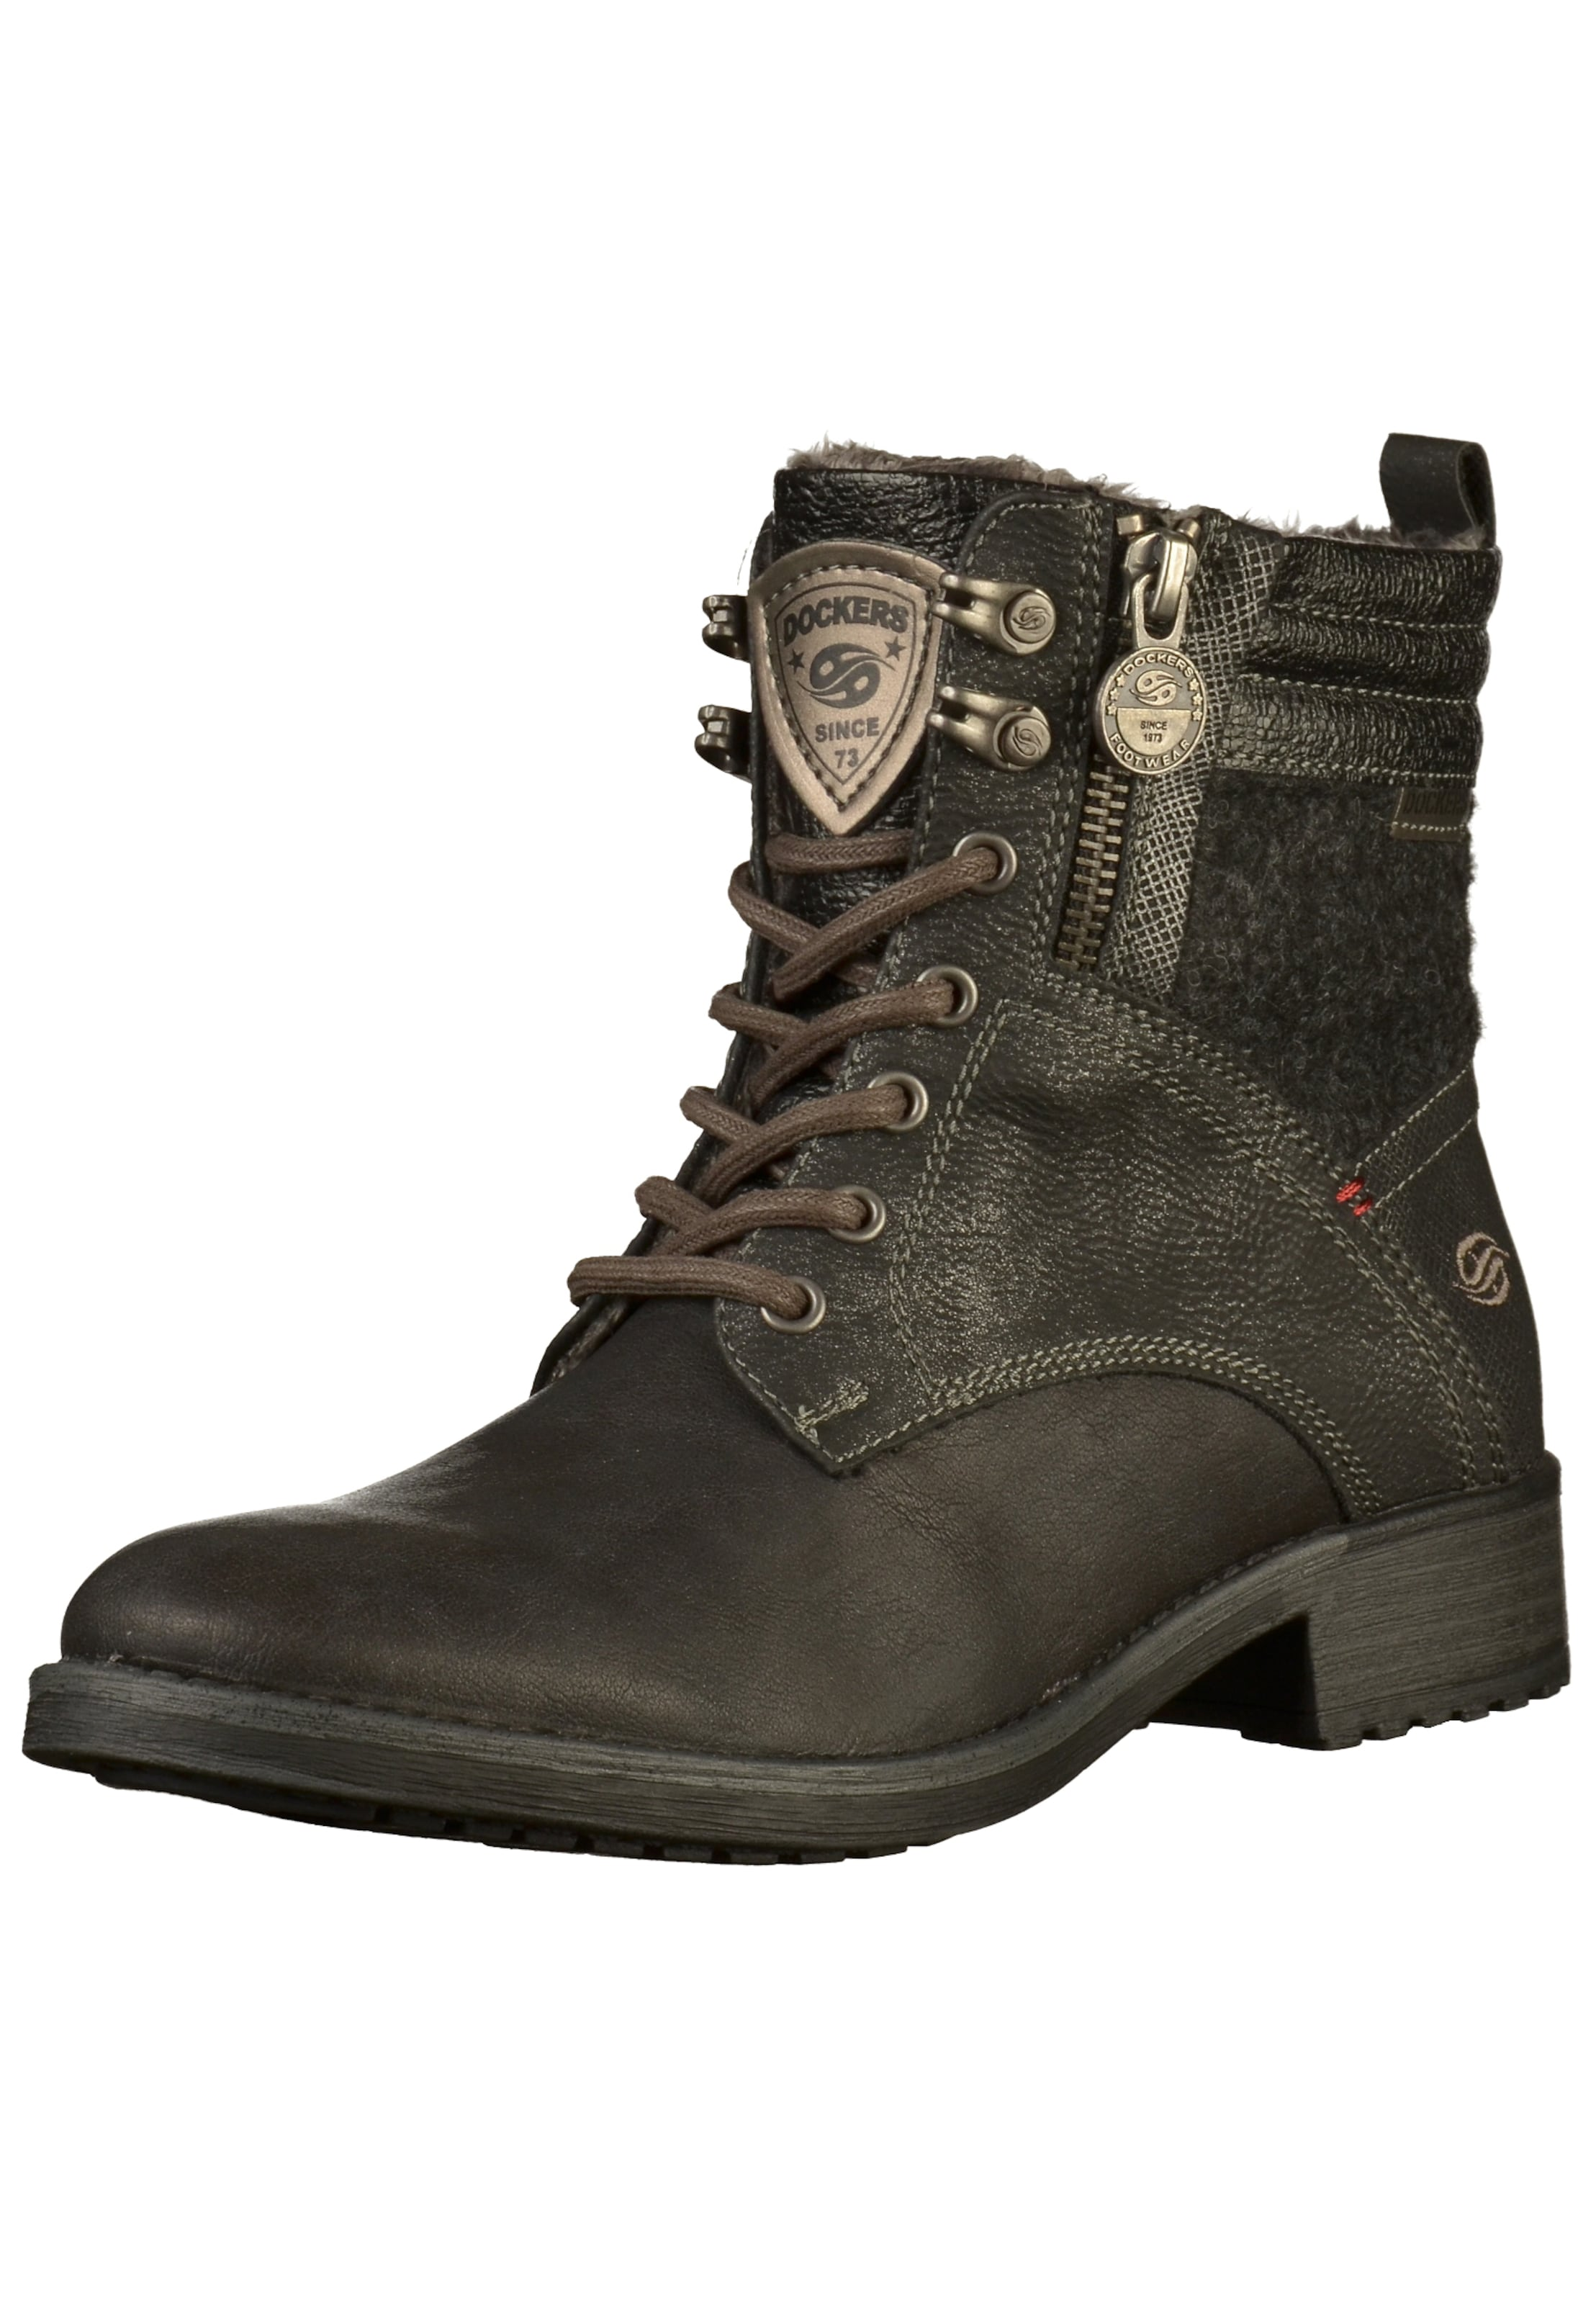 Anthracite En Lacets Dockers Bottines By Gerli À pqBnwfAY